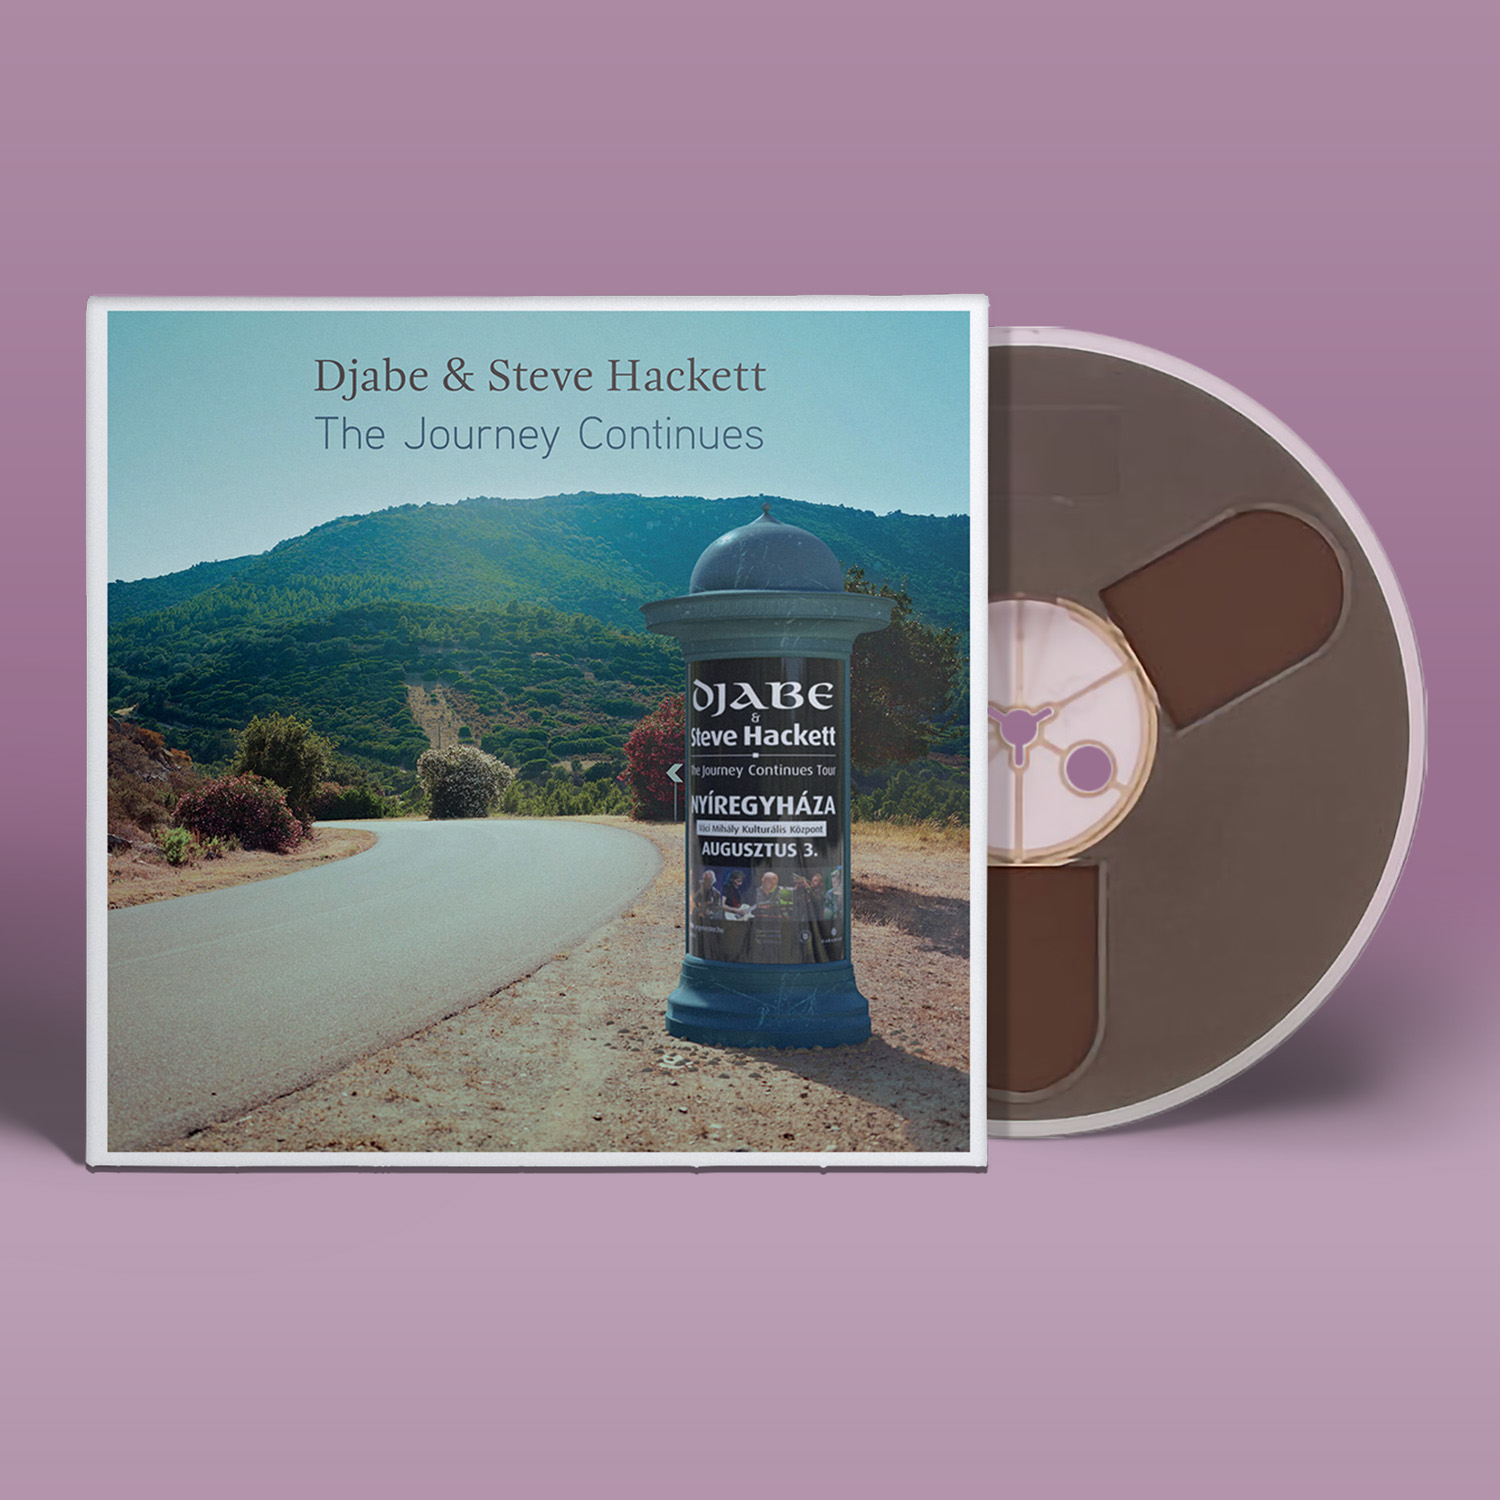 Djabe & Steve Hackett – The Journey Continues - 4 track reel-to-reel tape